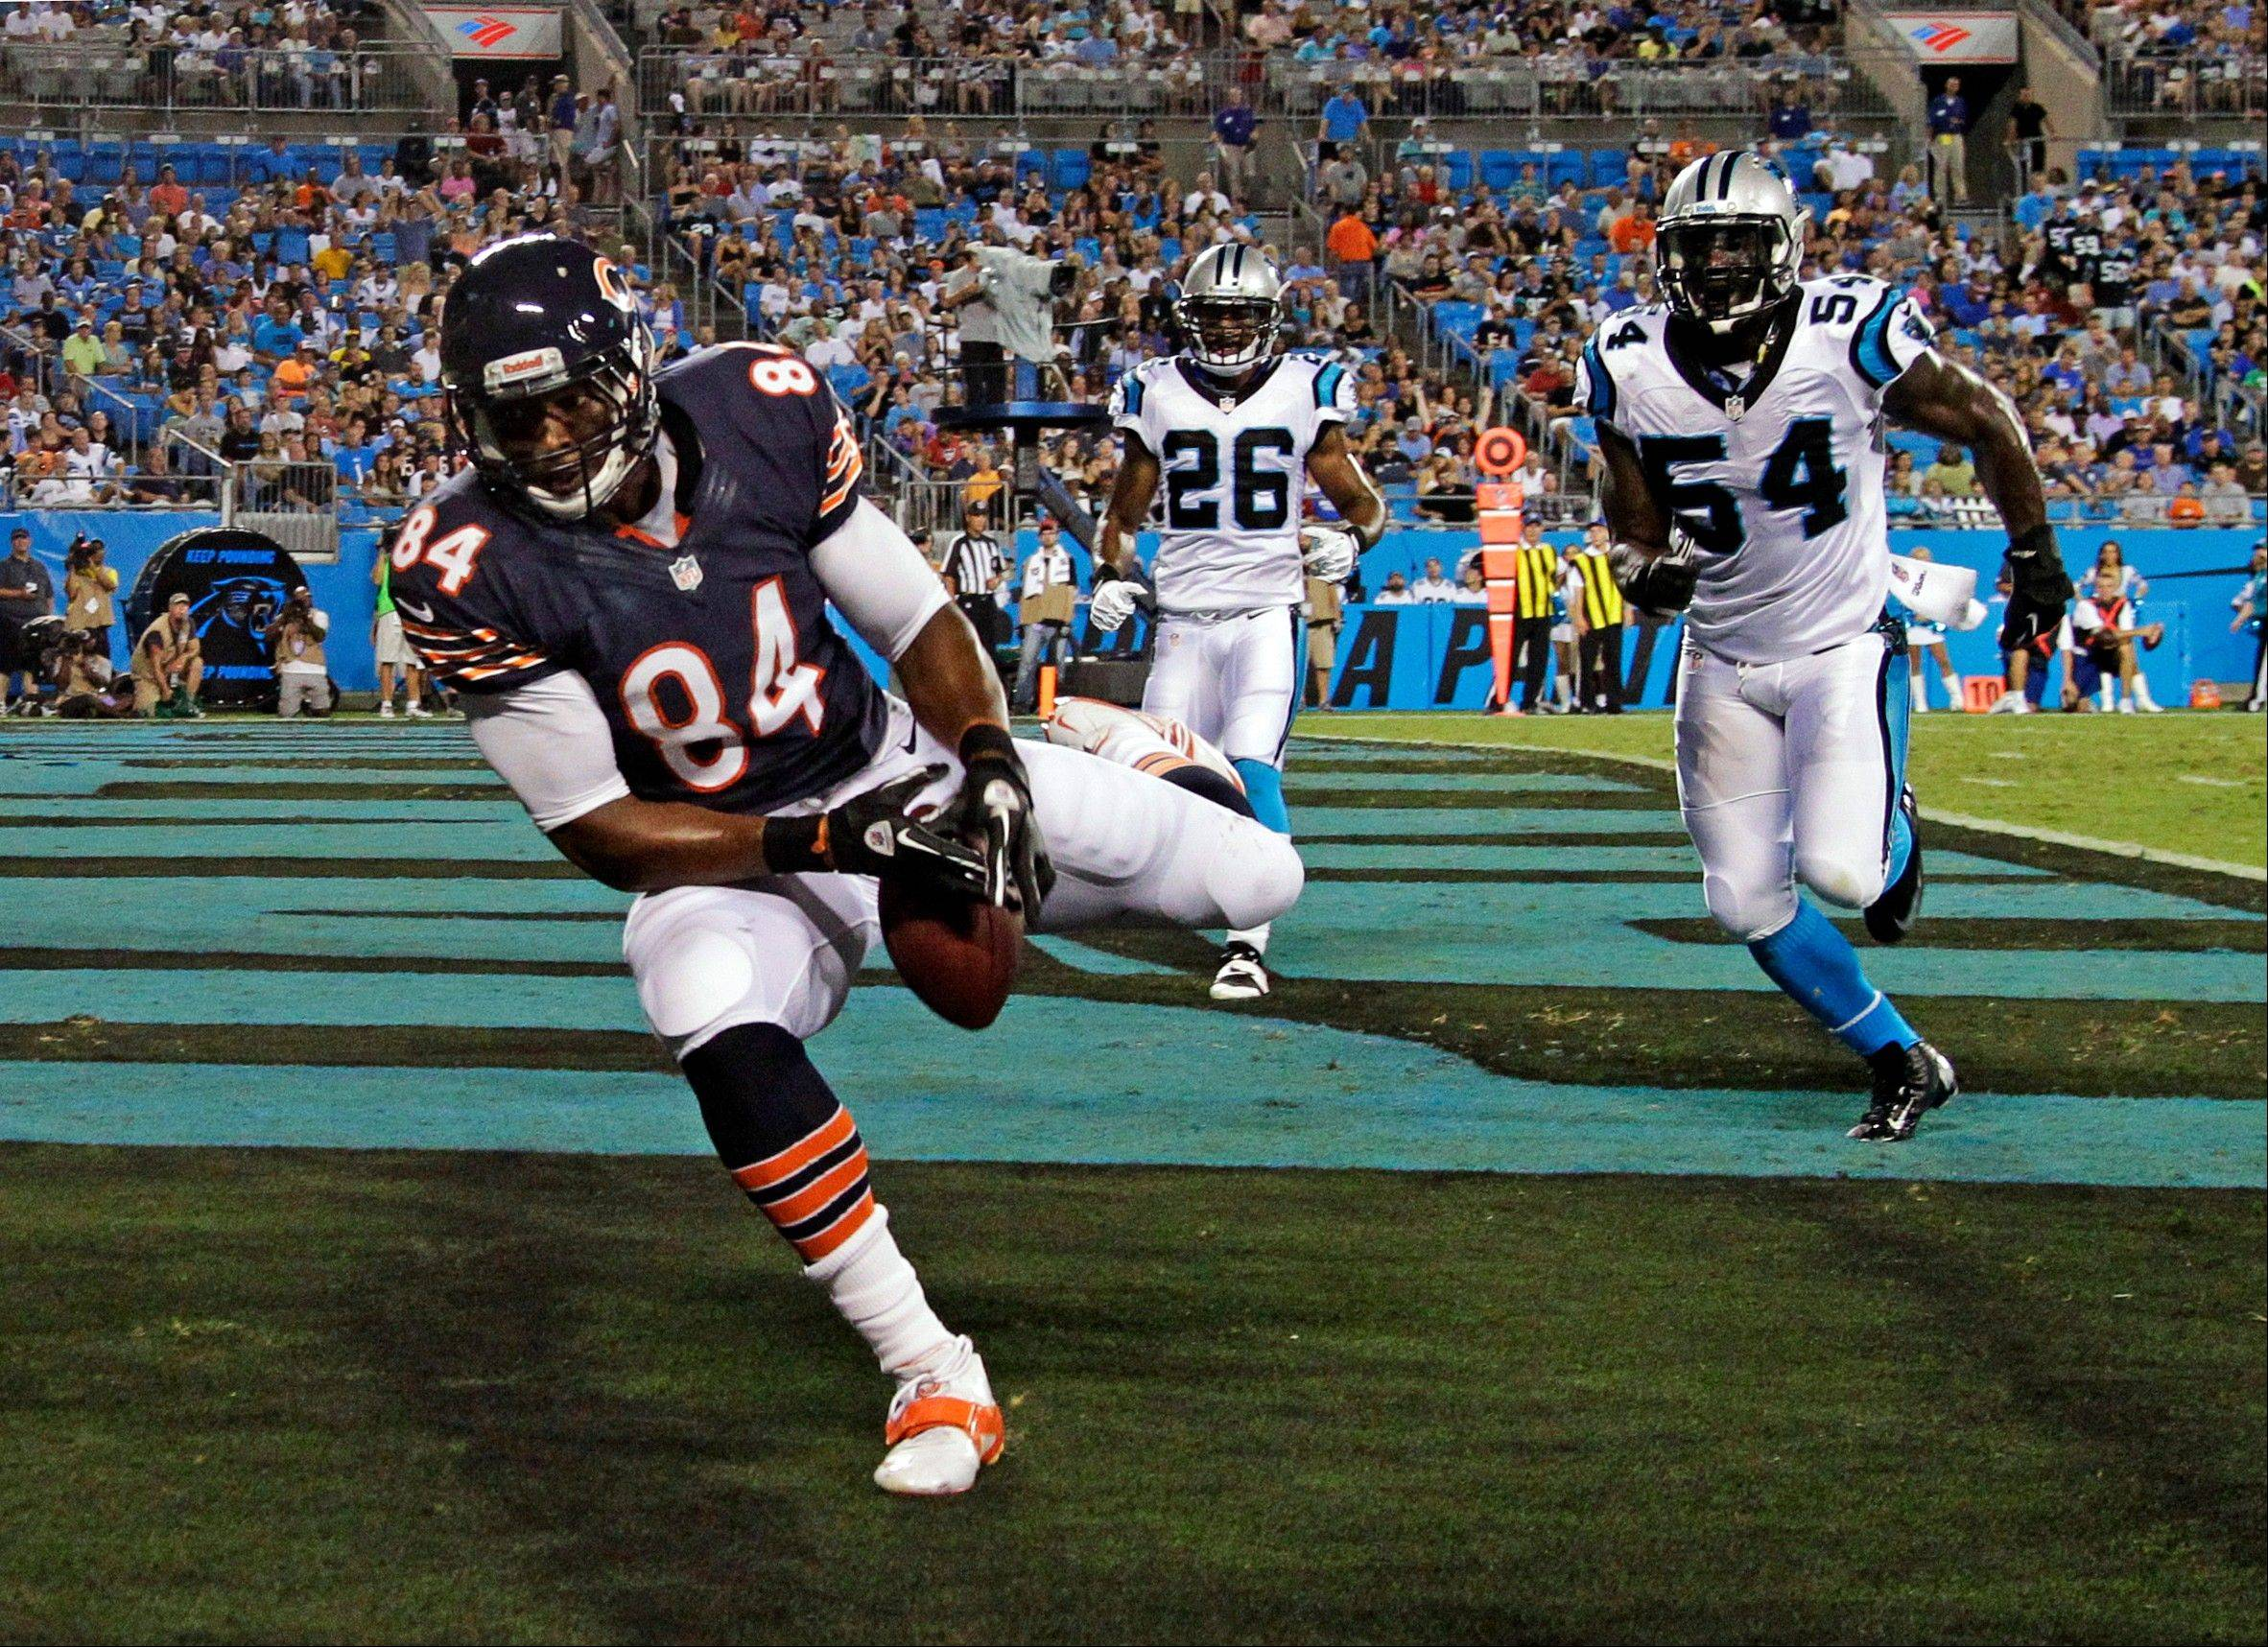 Chicago Bears' Fendi Onobun (84) drops a pass in the end zone as Carolina Panthers' Jason Williams (54) and D.J. Campbell (26) defend during the first half of a preseason NFL football game in Charlotte, N.C., Friday, Aug. 9, 2013.